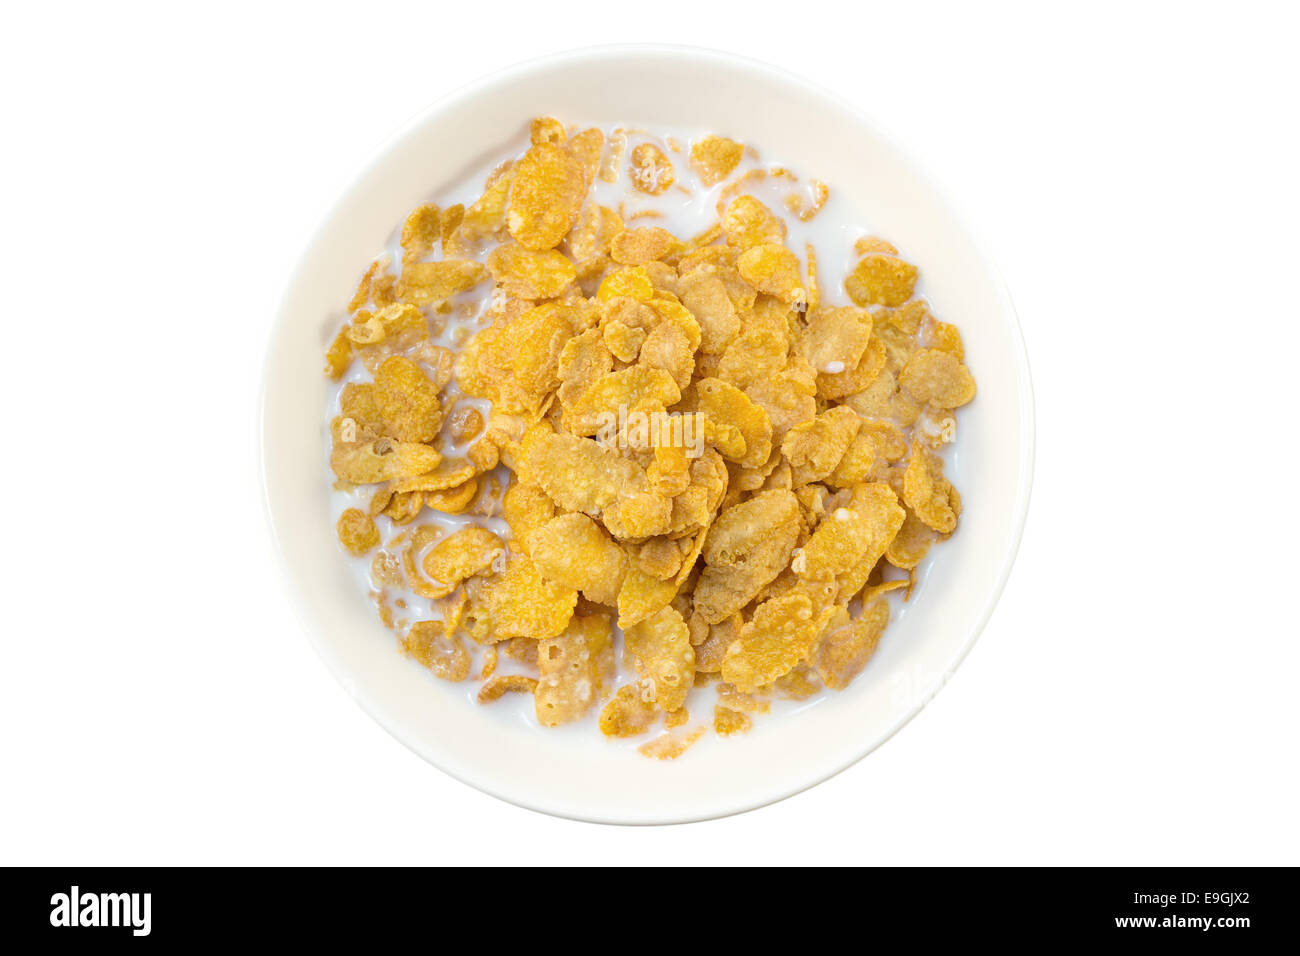 Closeup of corn flakes and milk in a bowl viewed from above, isolated on white background - Stock Image